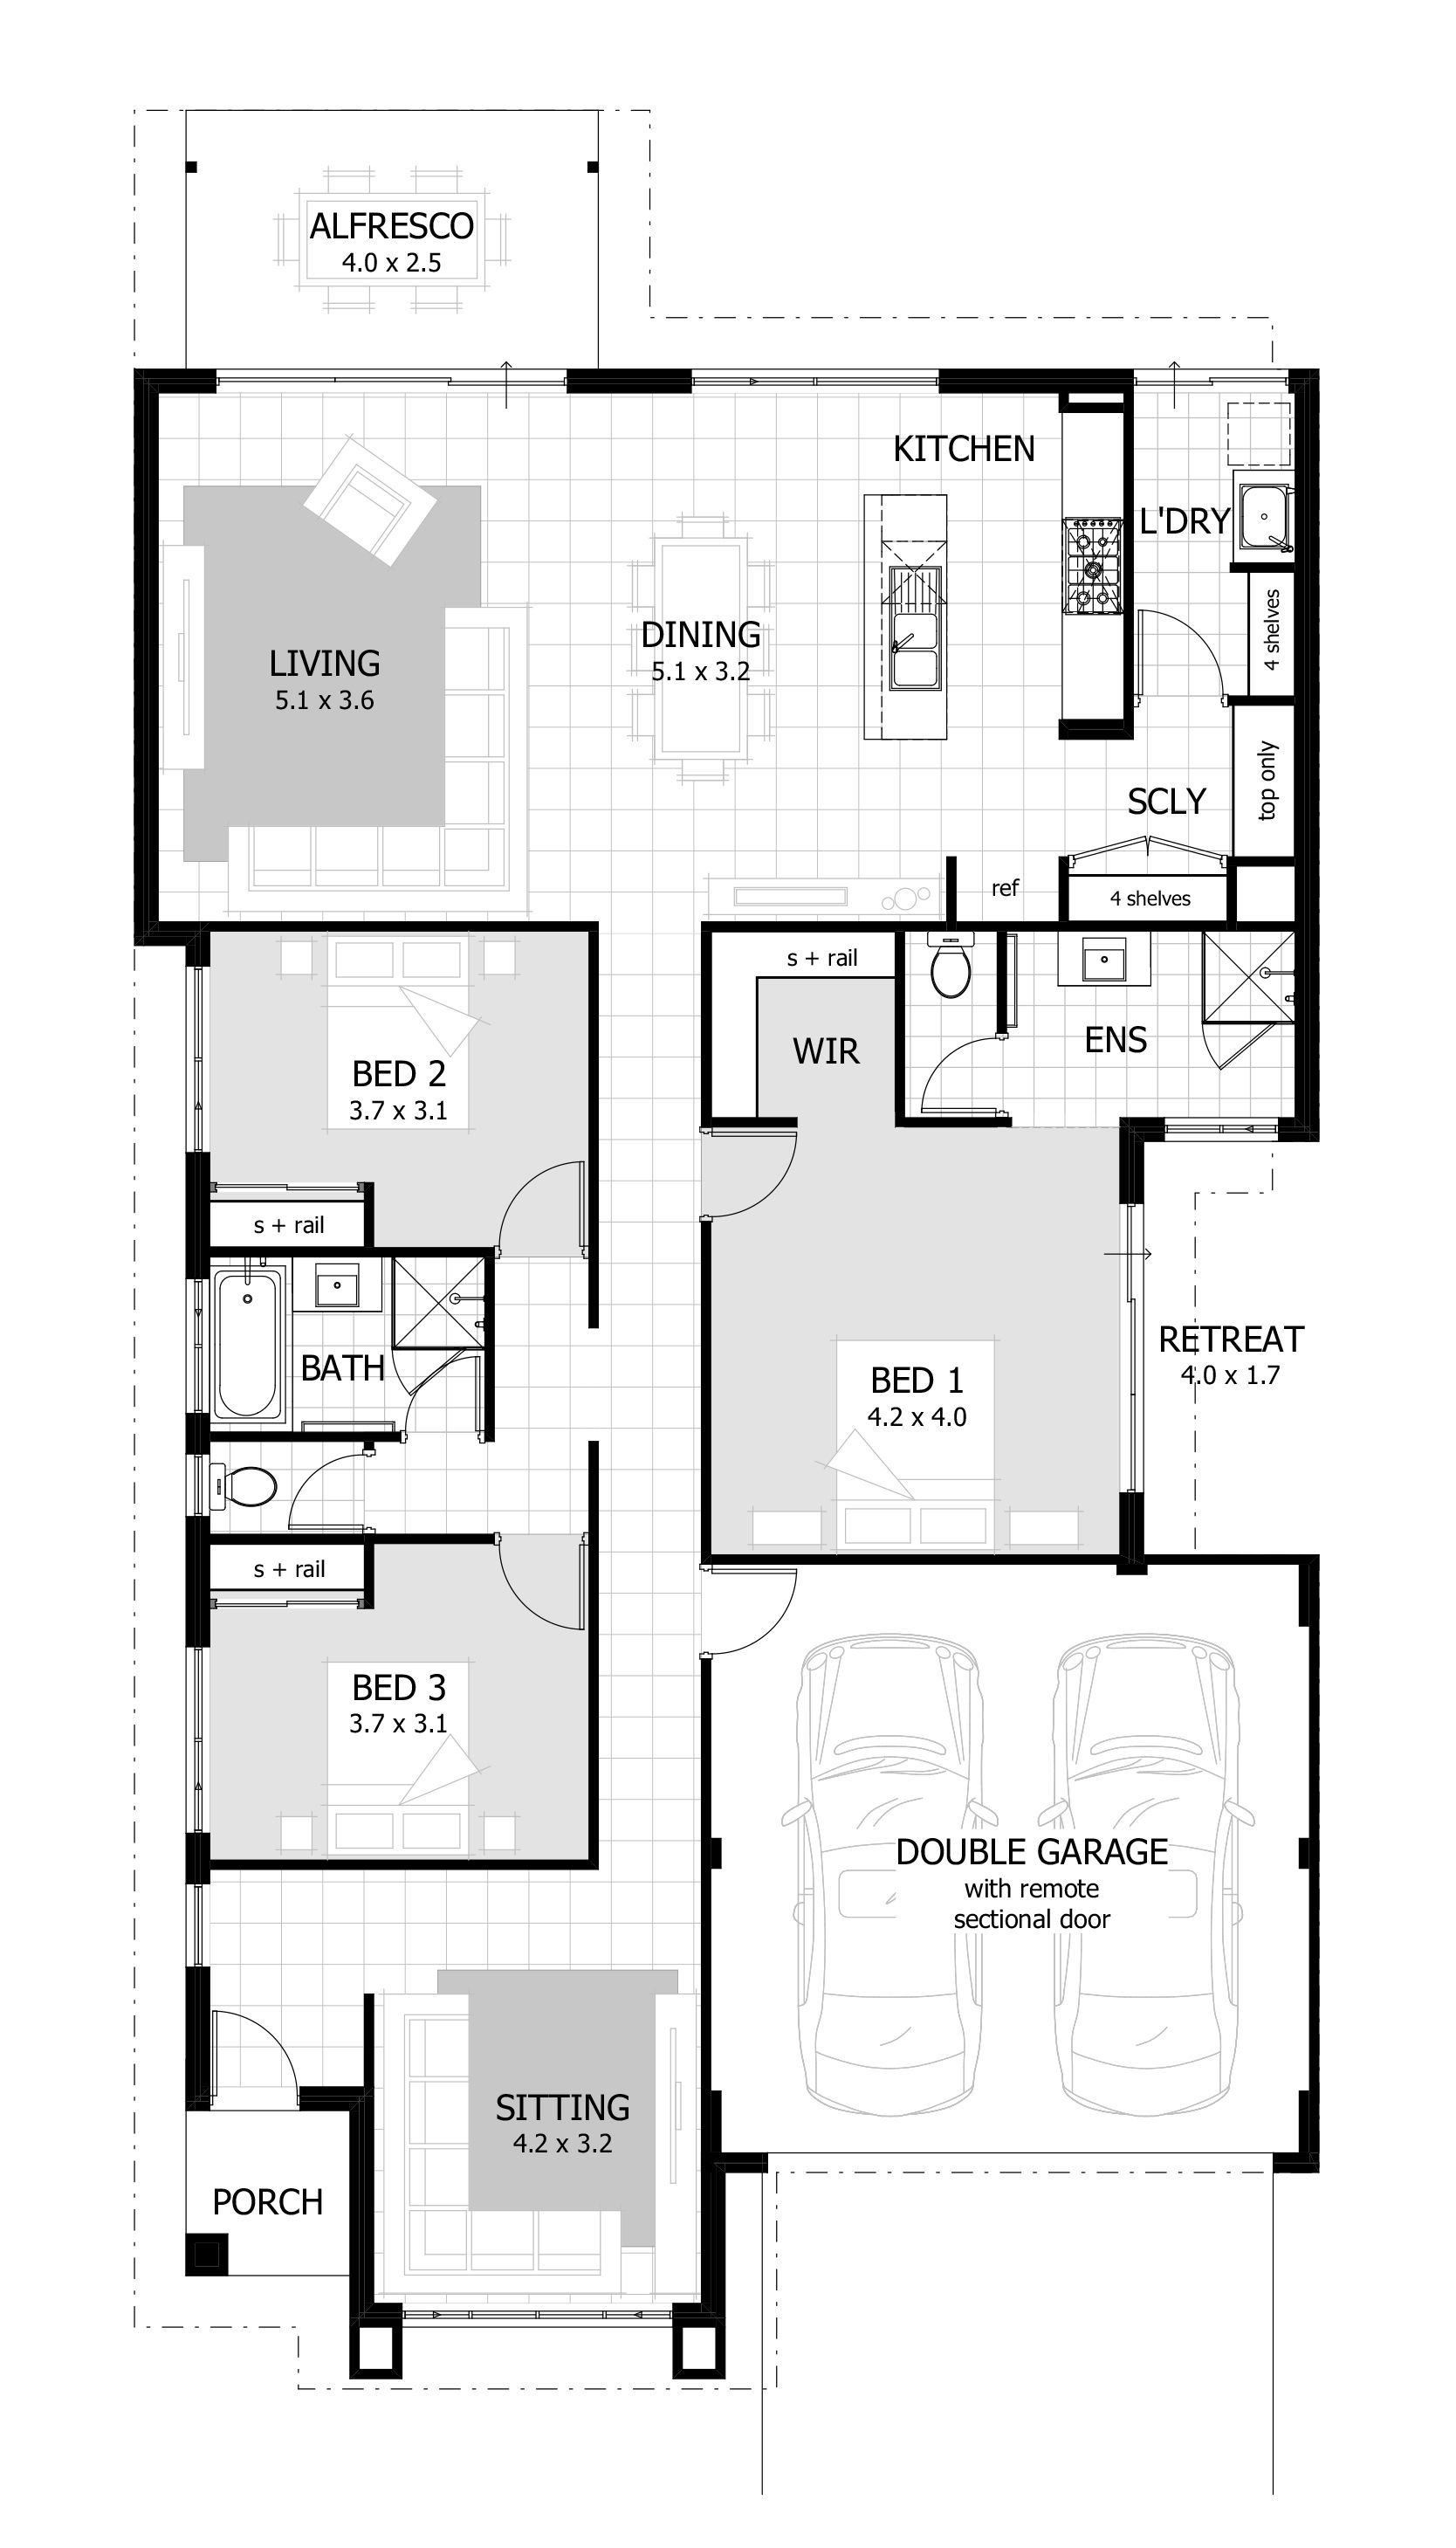 Browse Our Range Of 3 Bedroom House Plans Bedroom Floor Plans Floor Plans Bedroom House Plans